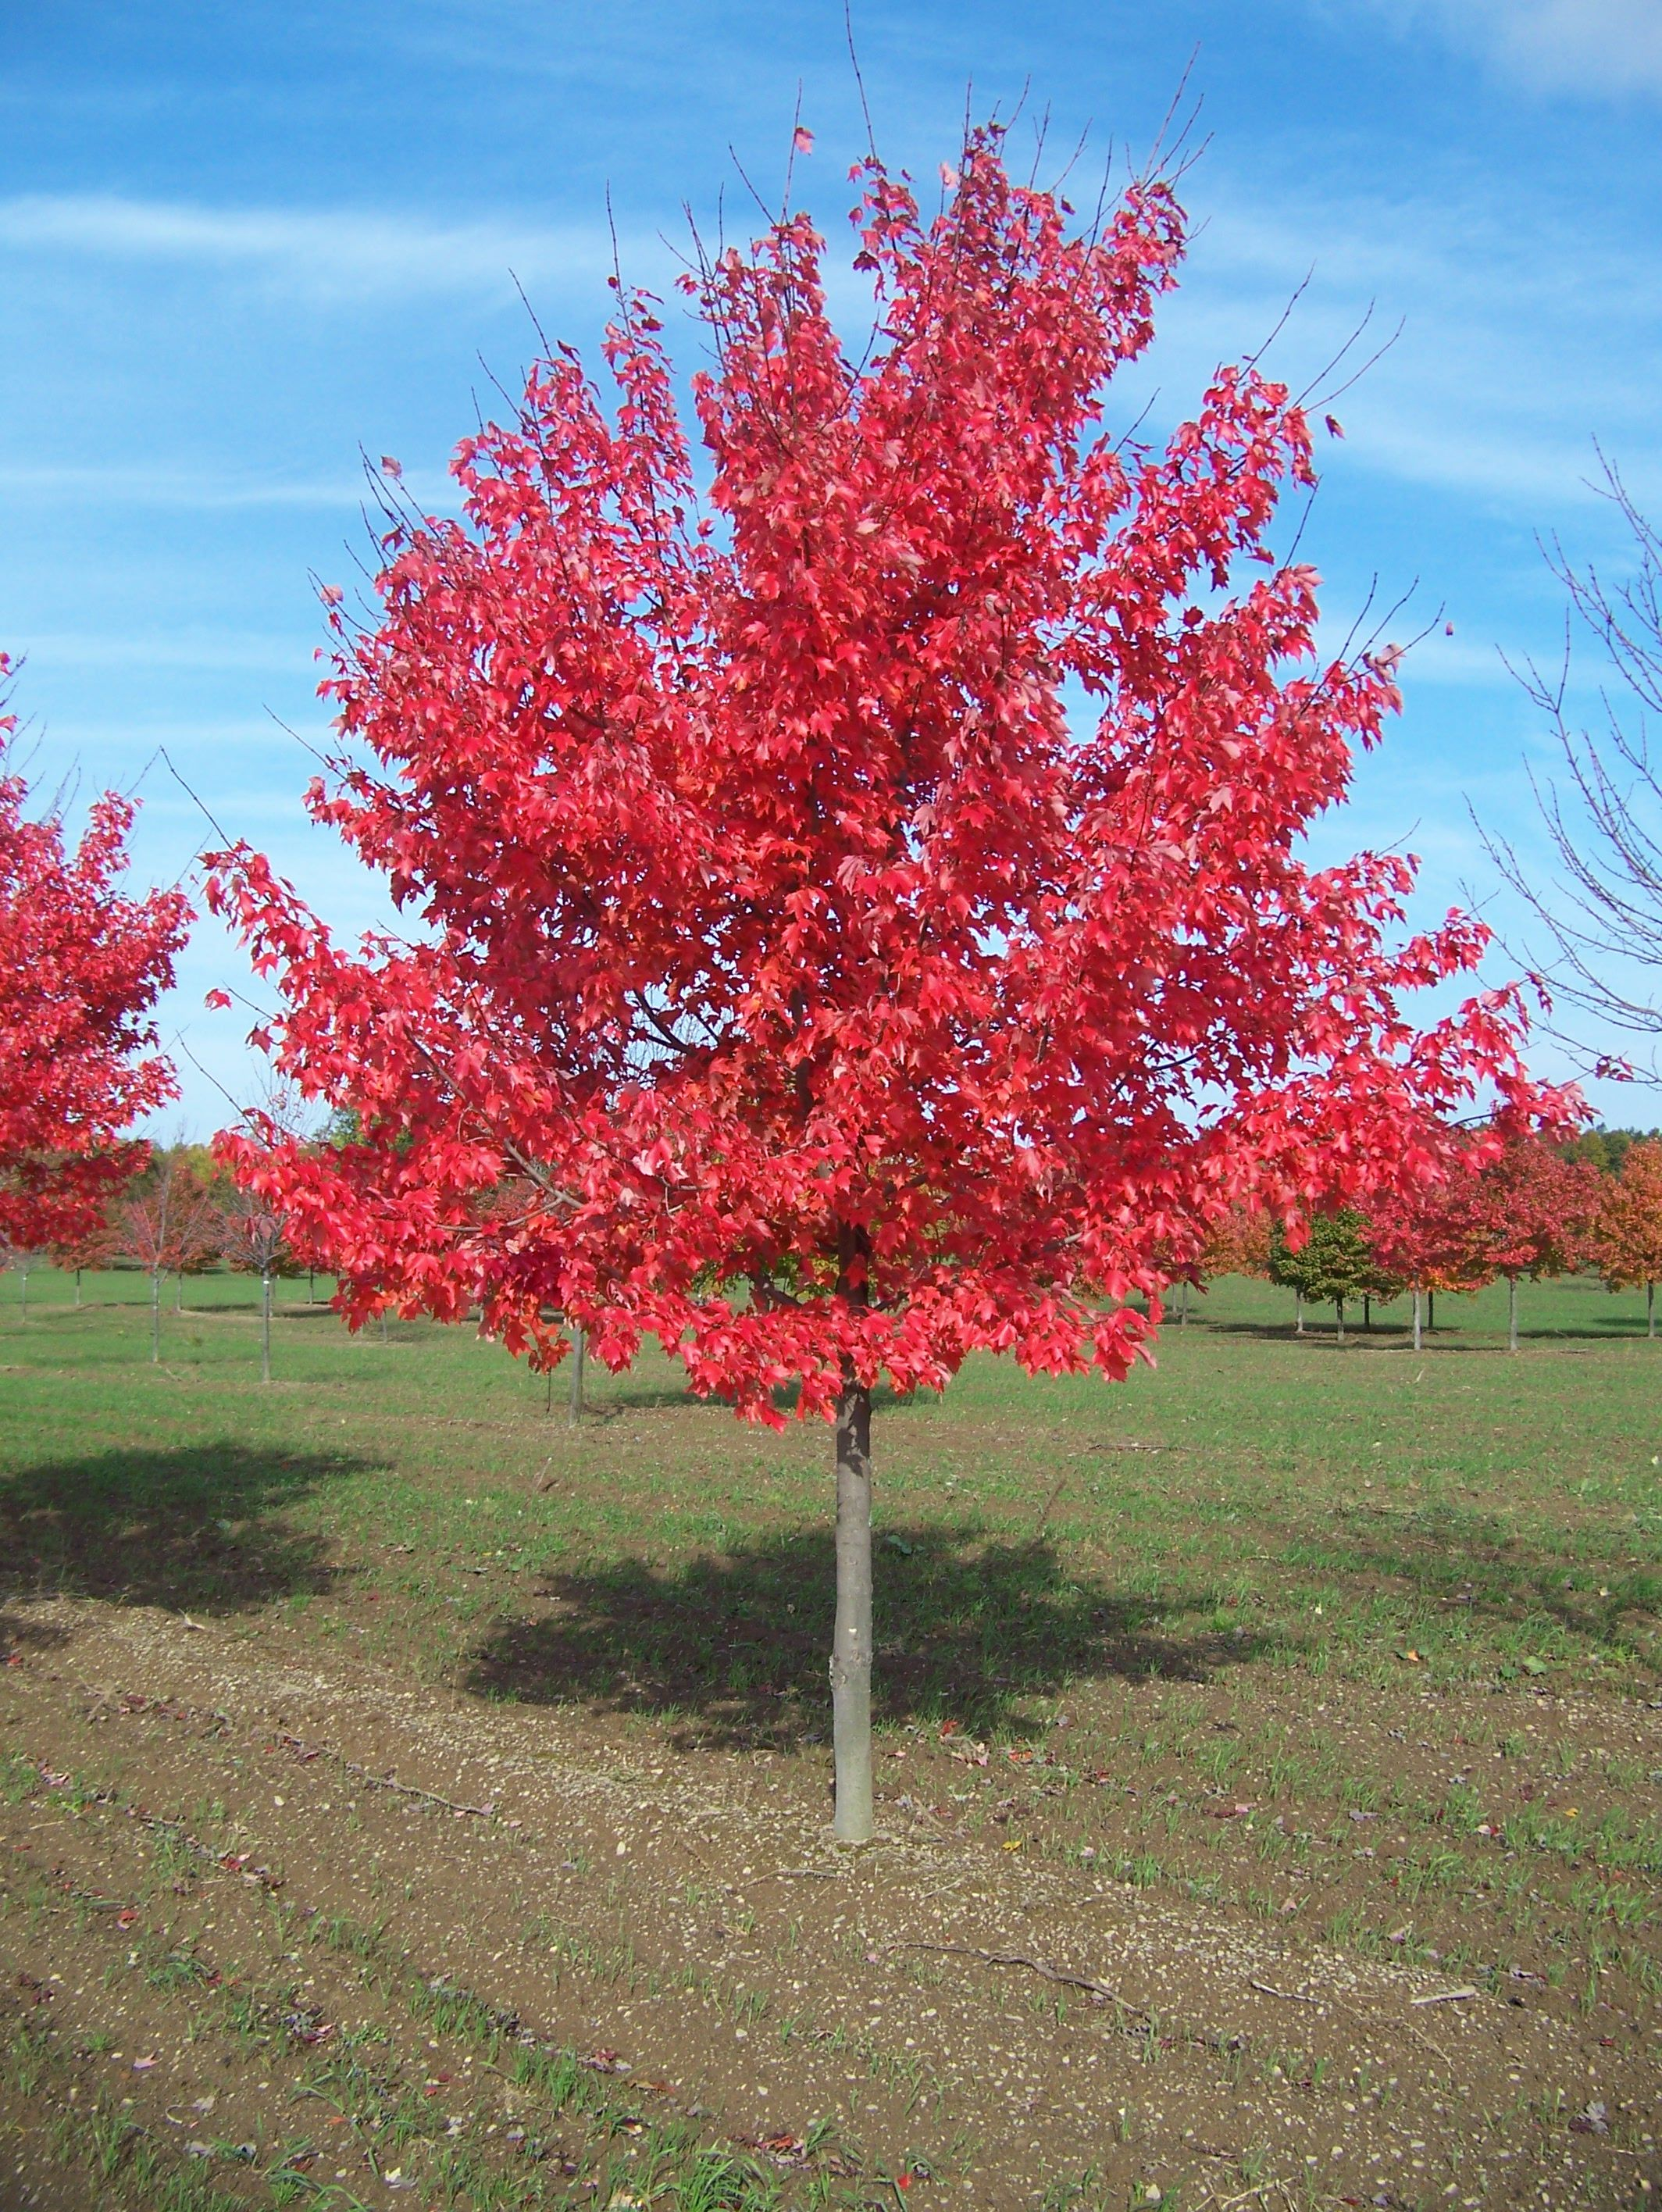 Ahorn October Glory Acer Rubrum Google Search Trees Canopy Red Sunset